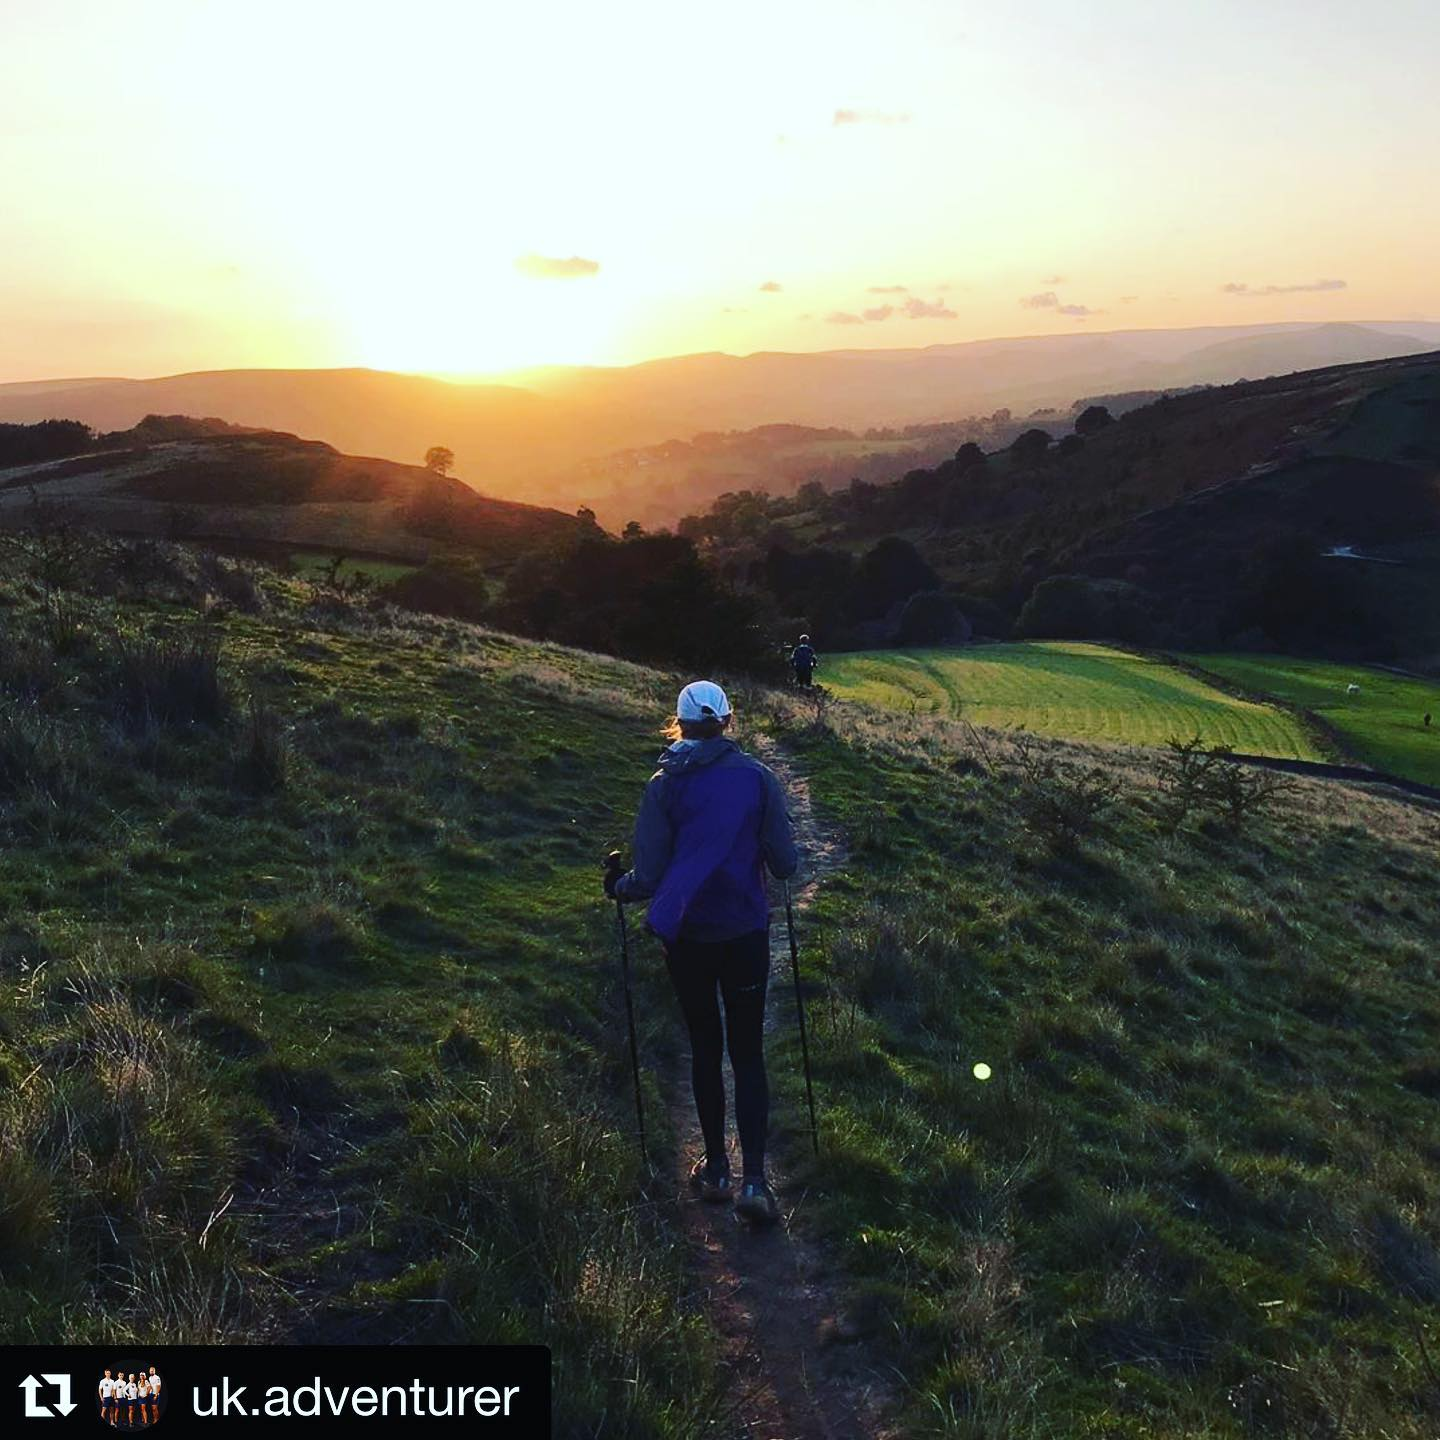 Repost from @uk.adventurer - amazing effort, well done team! ・・・ A couple of pictures of the 100k...